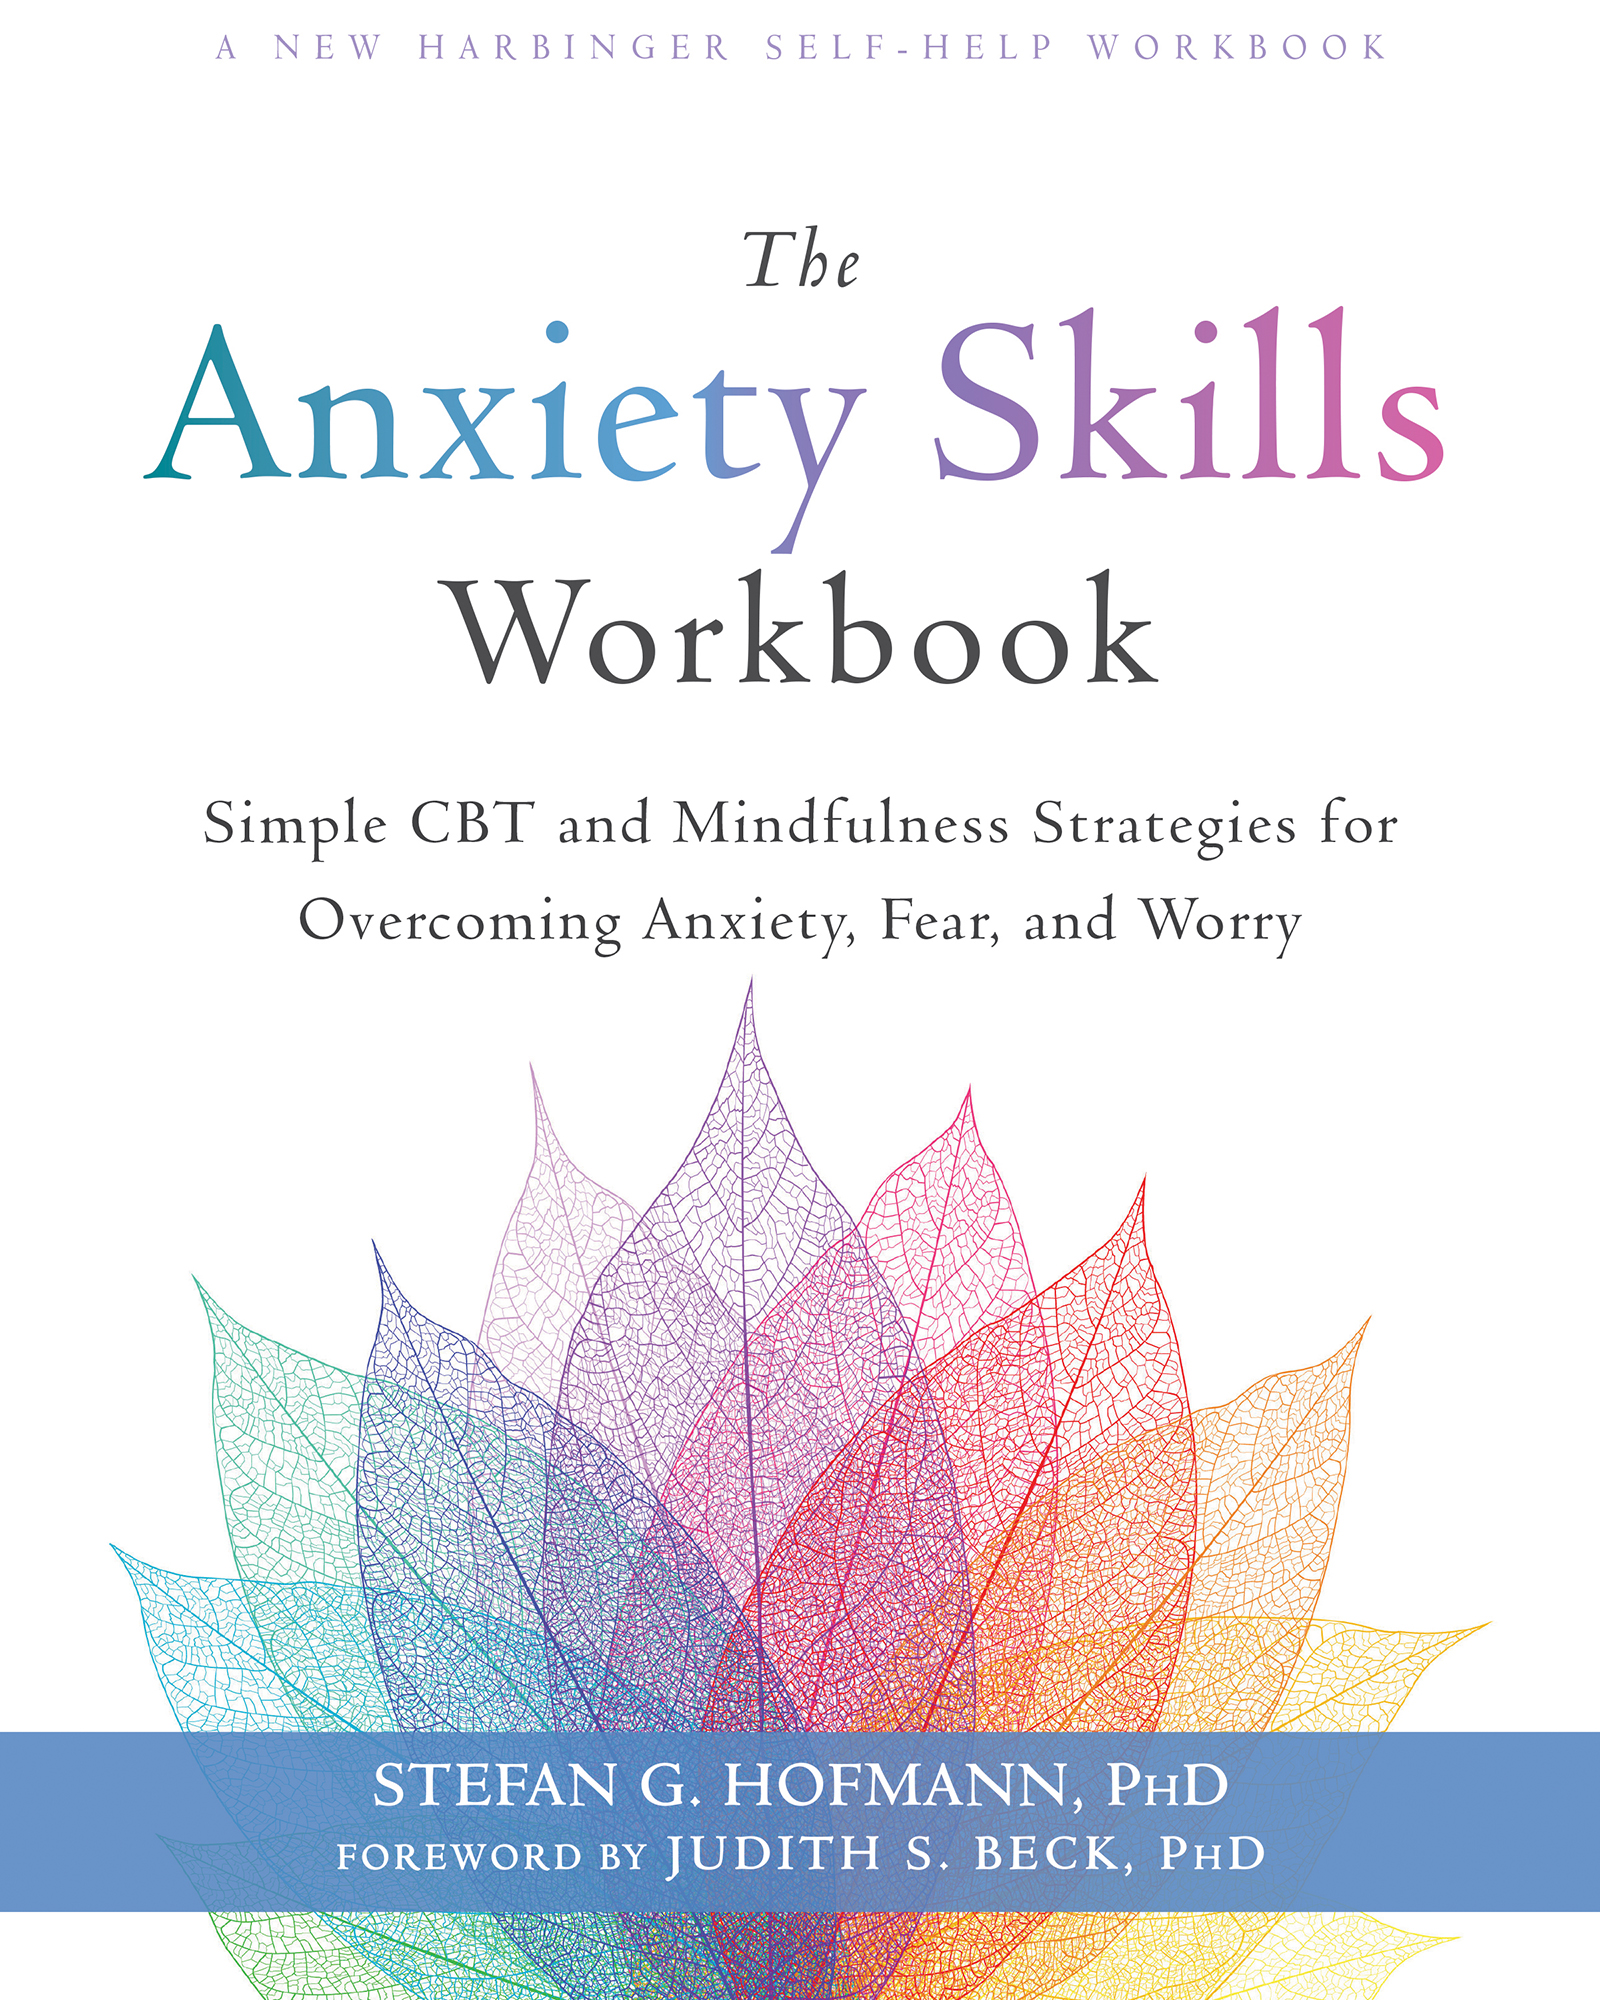 The Anxiety Skills Workbook Simple CBT and Mindfulness Strategies for Overcoming Anxiety, Fear, and Worry